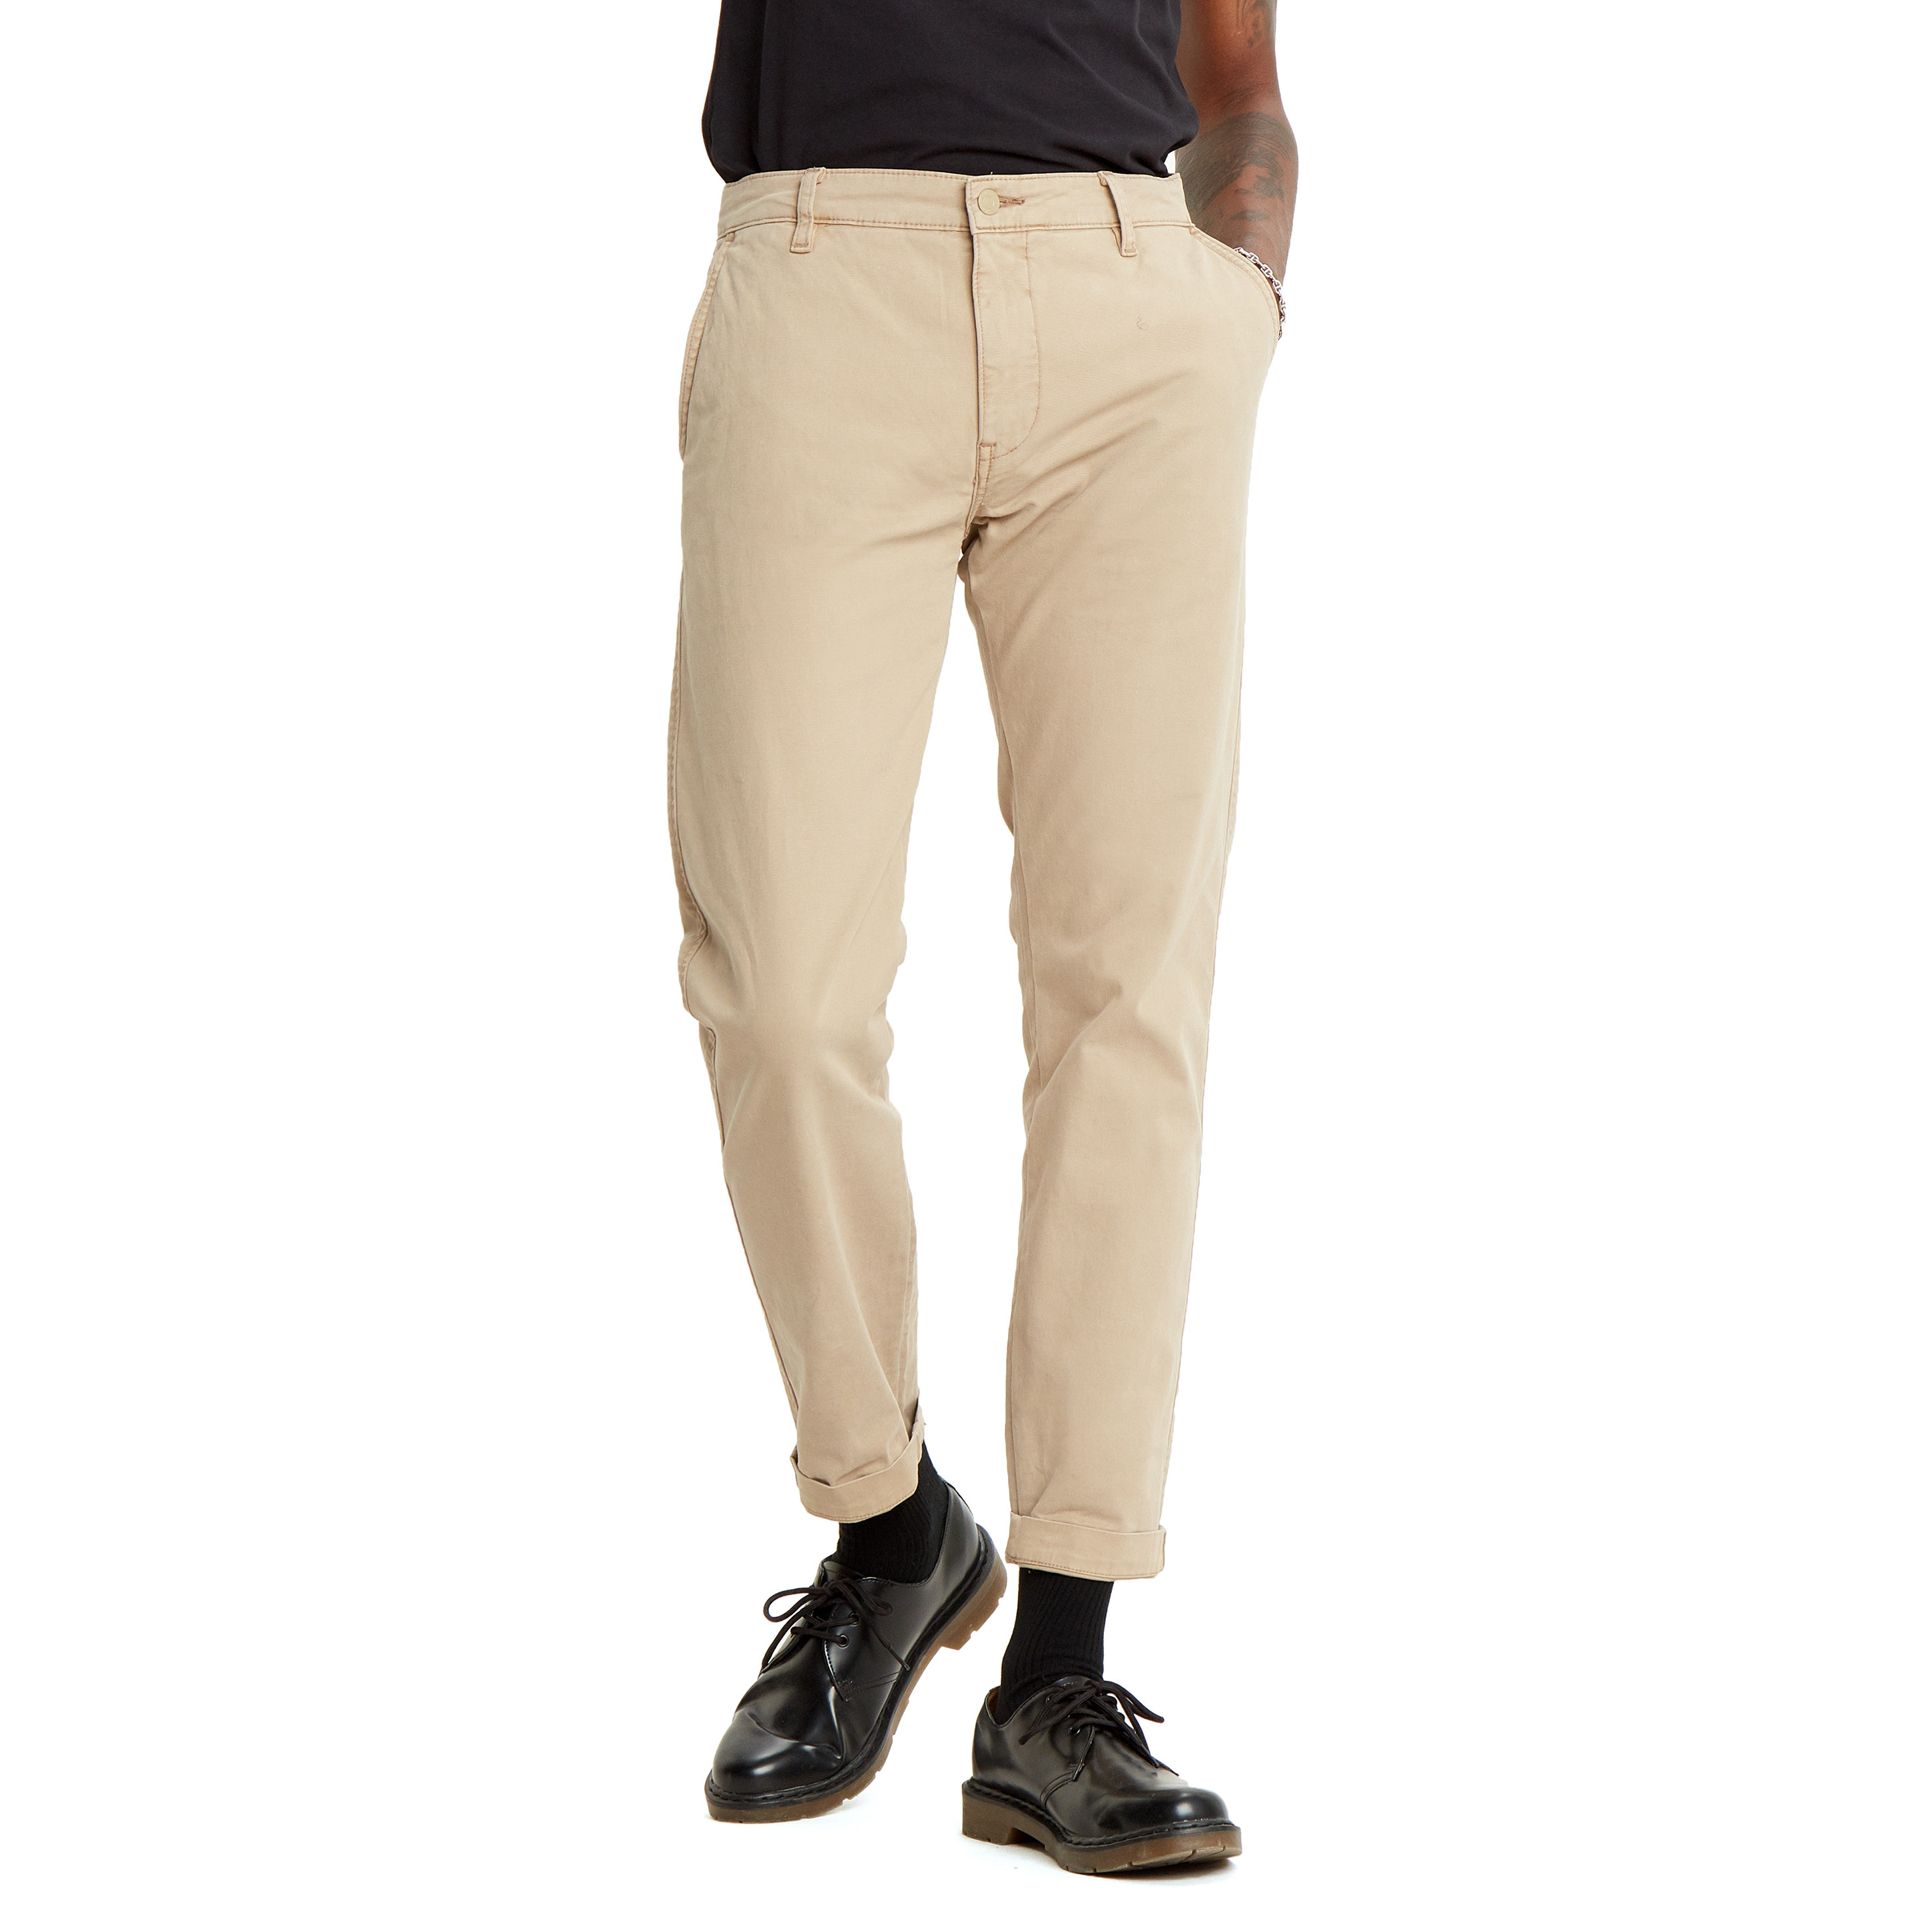 29+ Levis Chinos Images